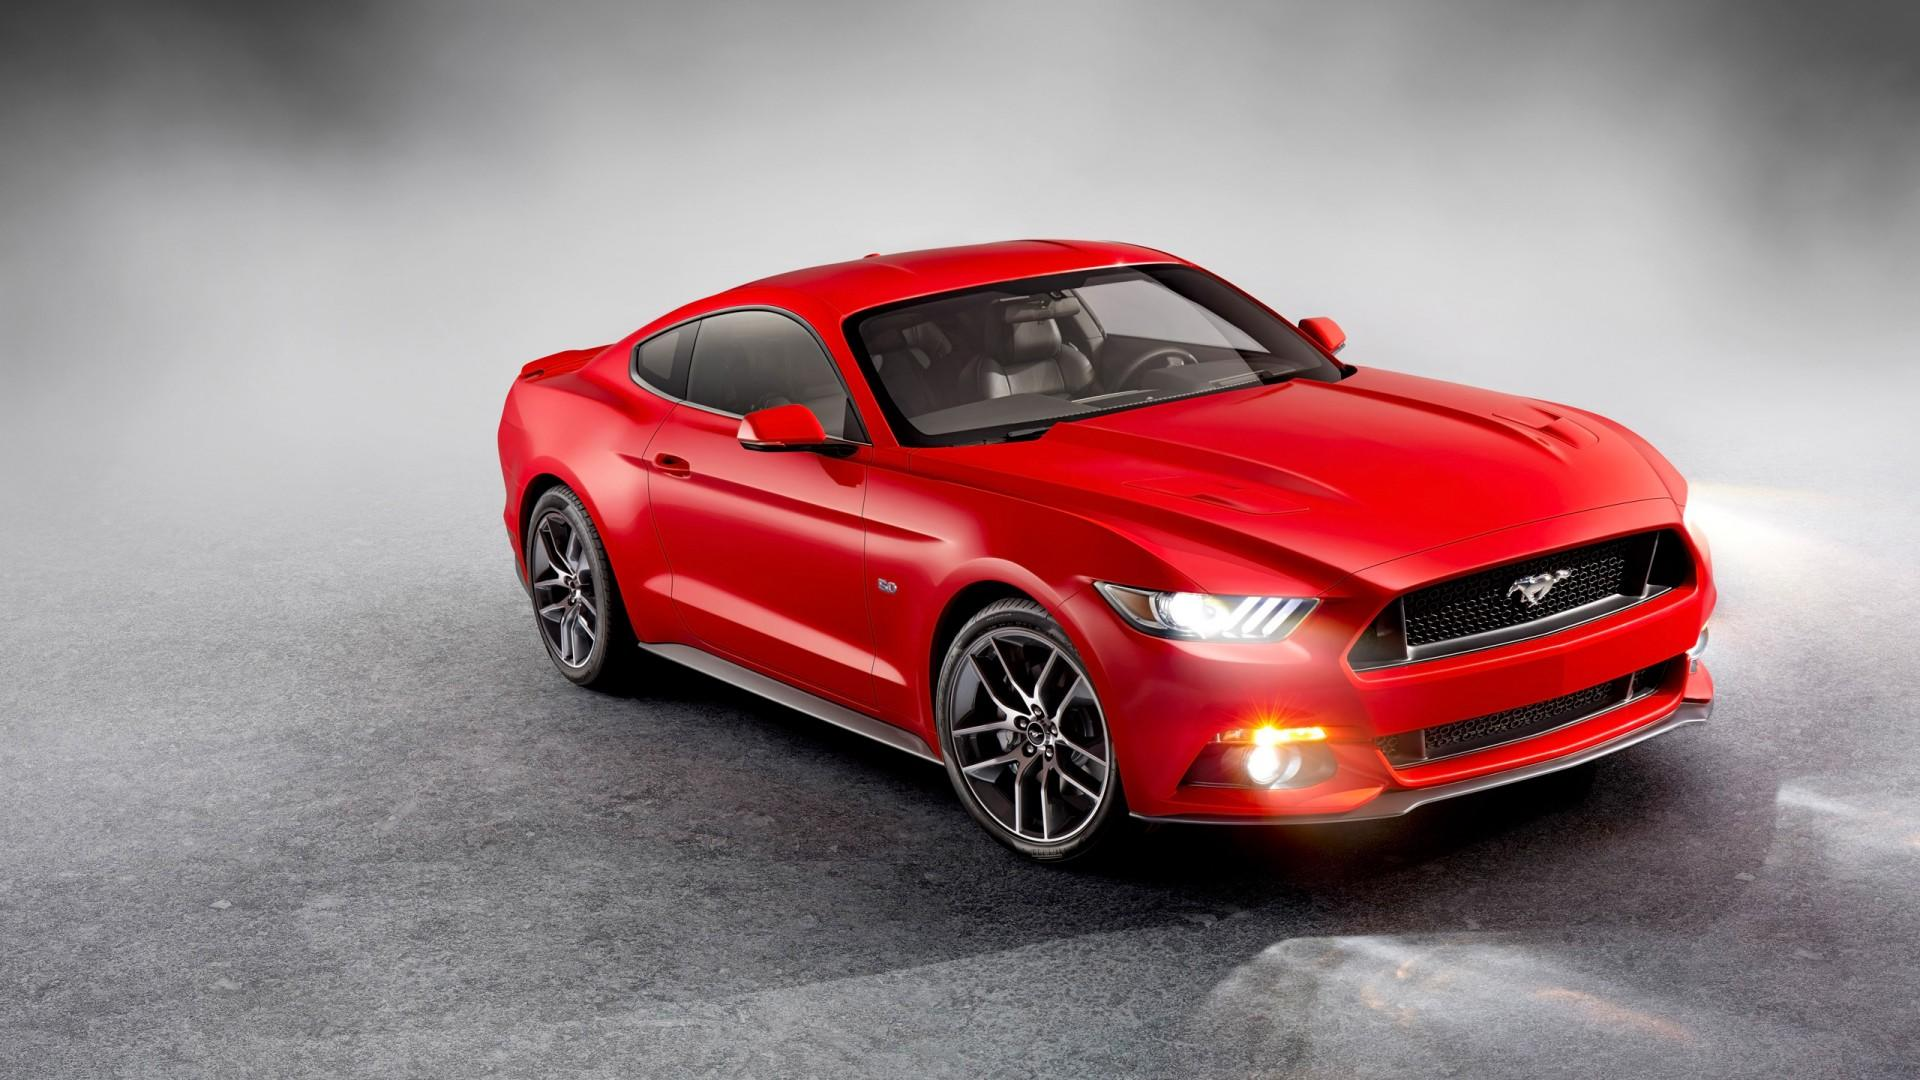 Ford Mustang Scores Blundering 2 Stars in NCAP Crash Tests